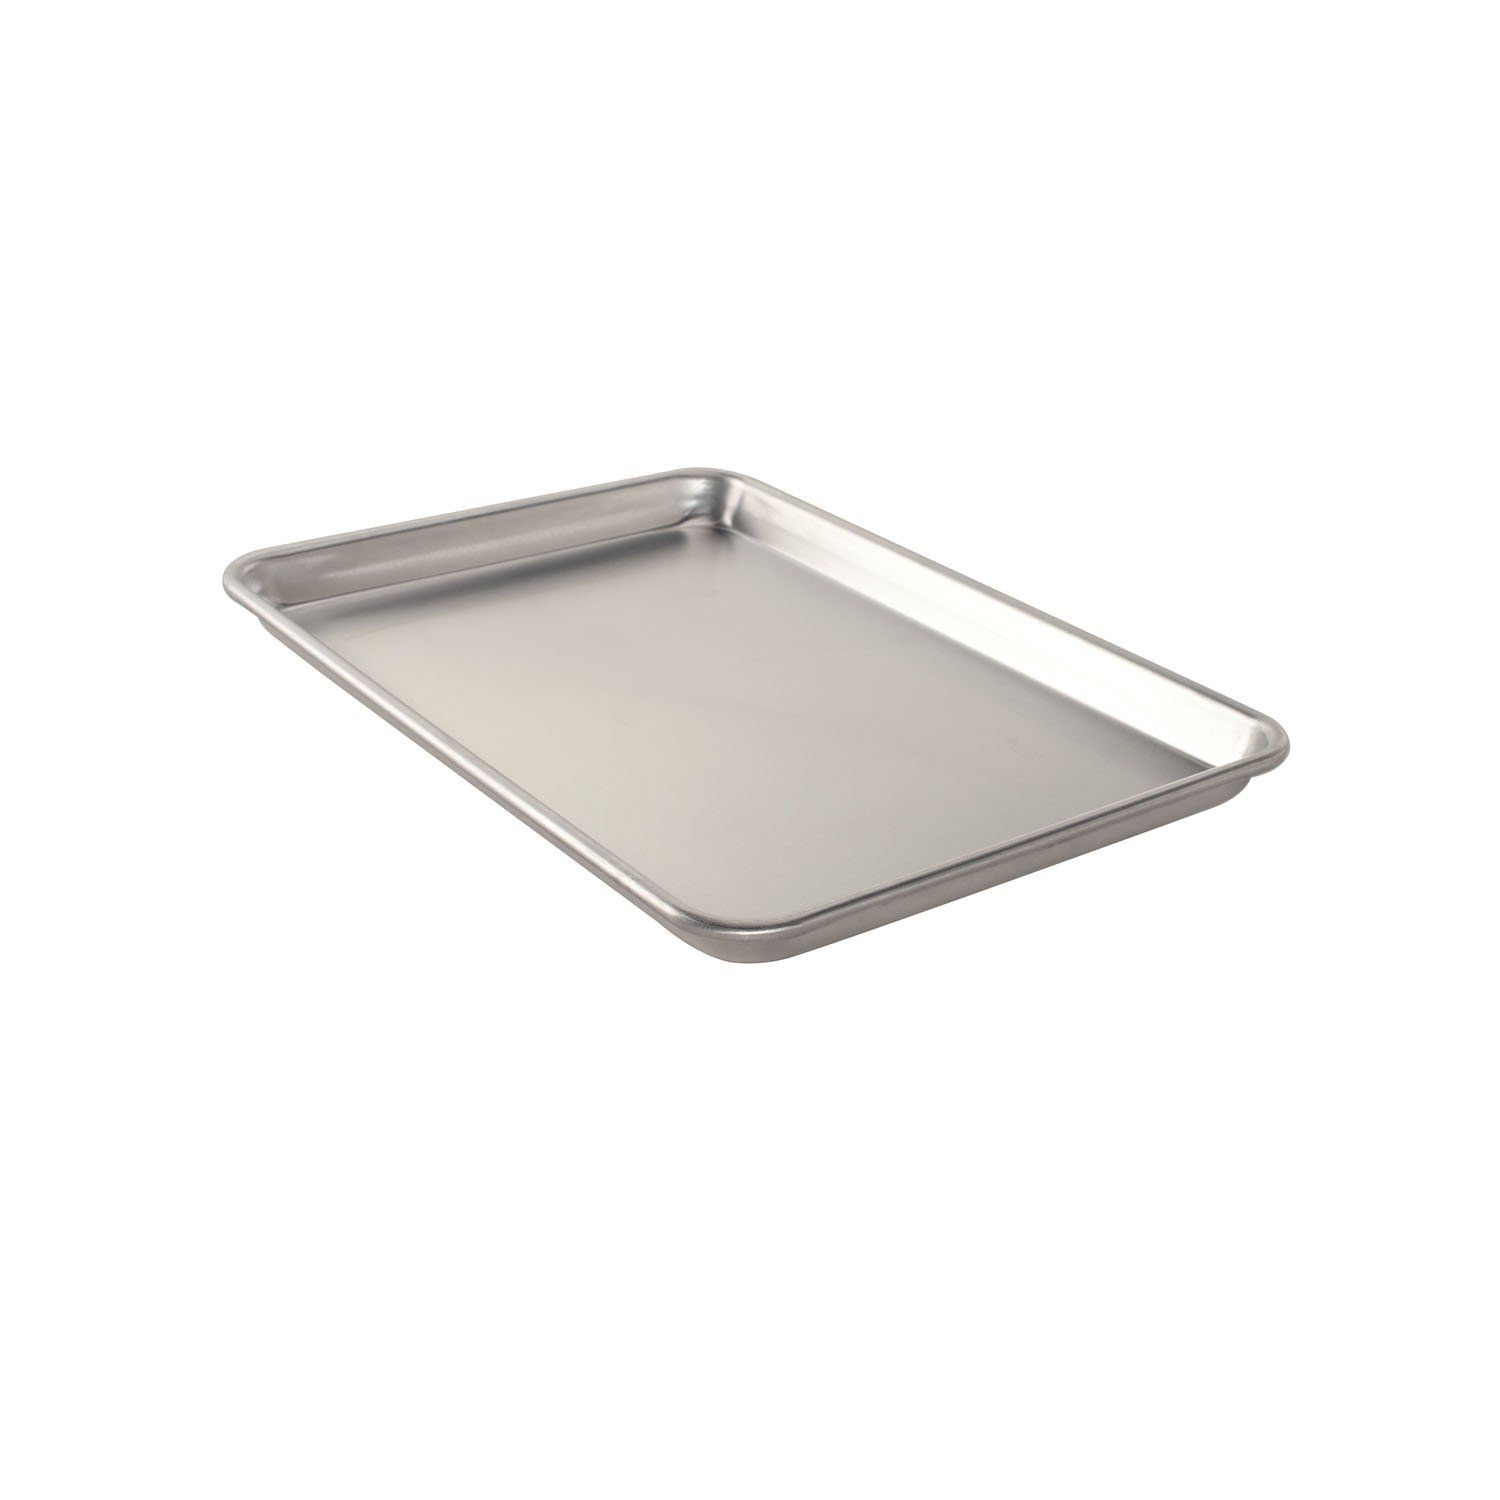 Sturdy Sides Tall Enough To Handle Cookies Texas Sheet Cake Or Cinnamon Rolls Nordic Ware Natural Aluminum Nordic Ware Baking Sheet Kitchen Essentials List